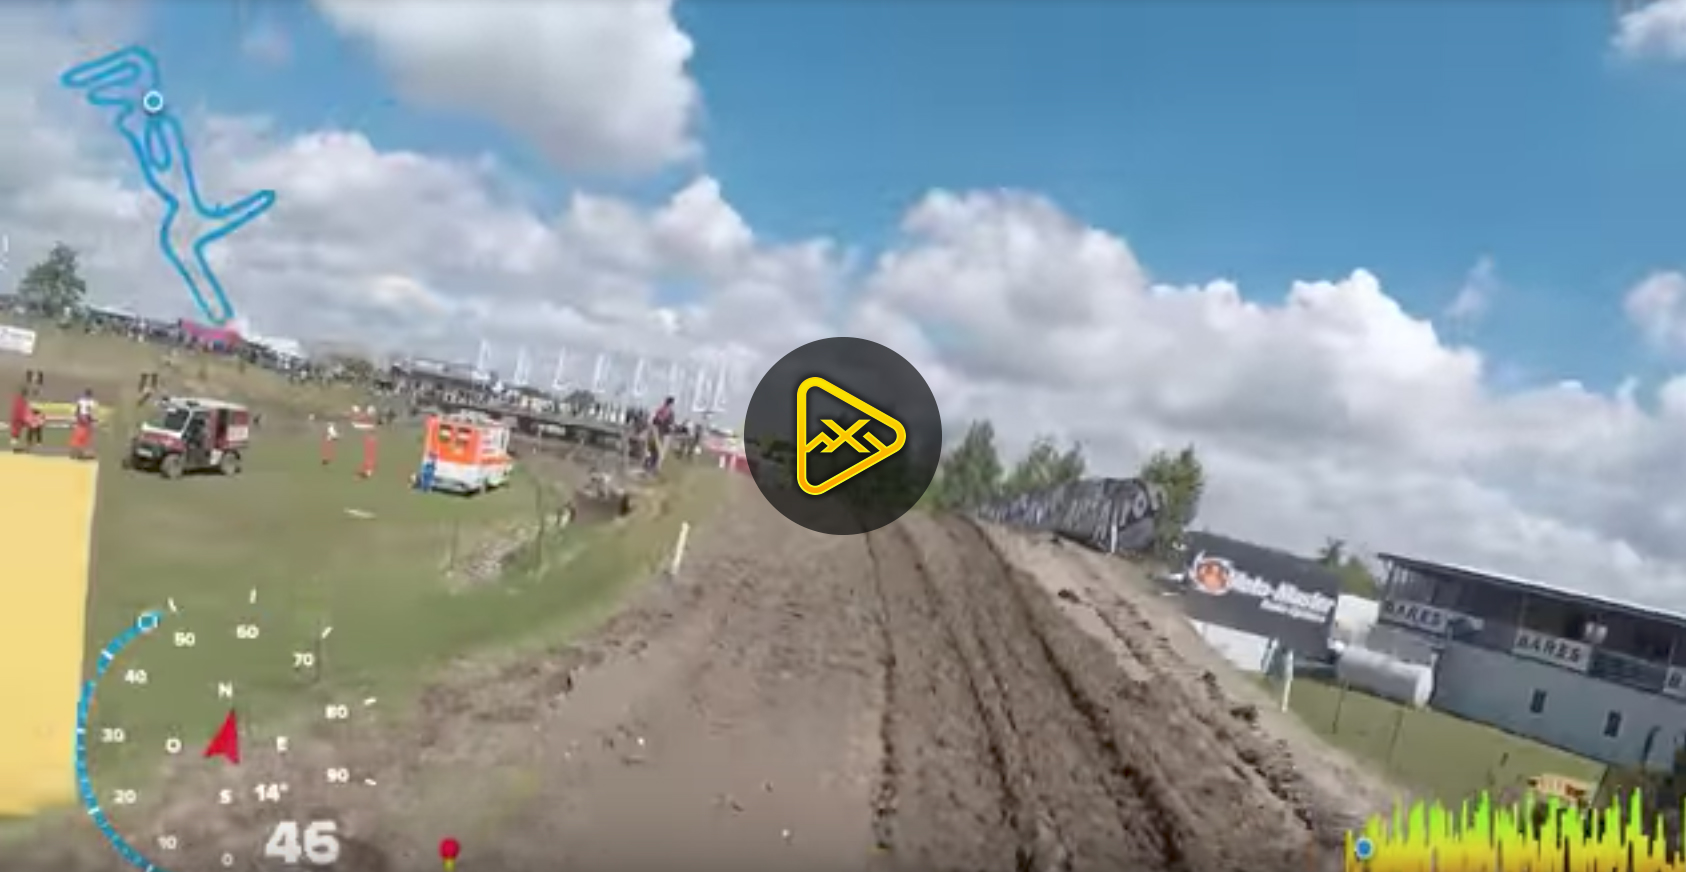 GoPro: A Lap Around 2017 MXGP of Germany